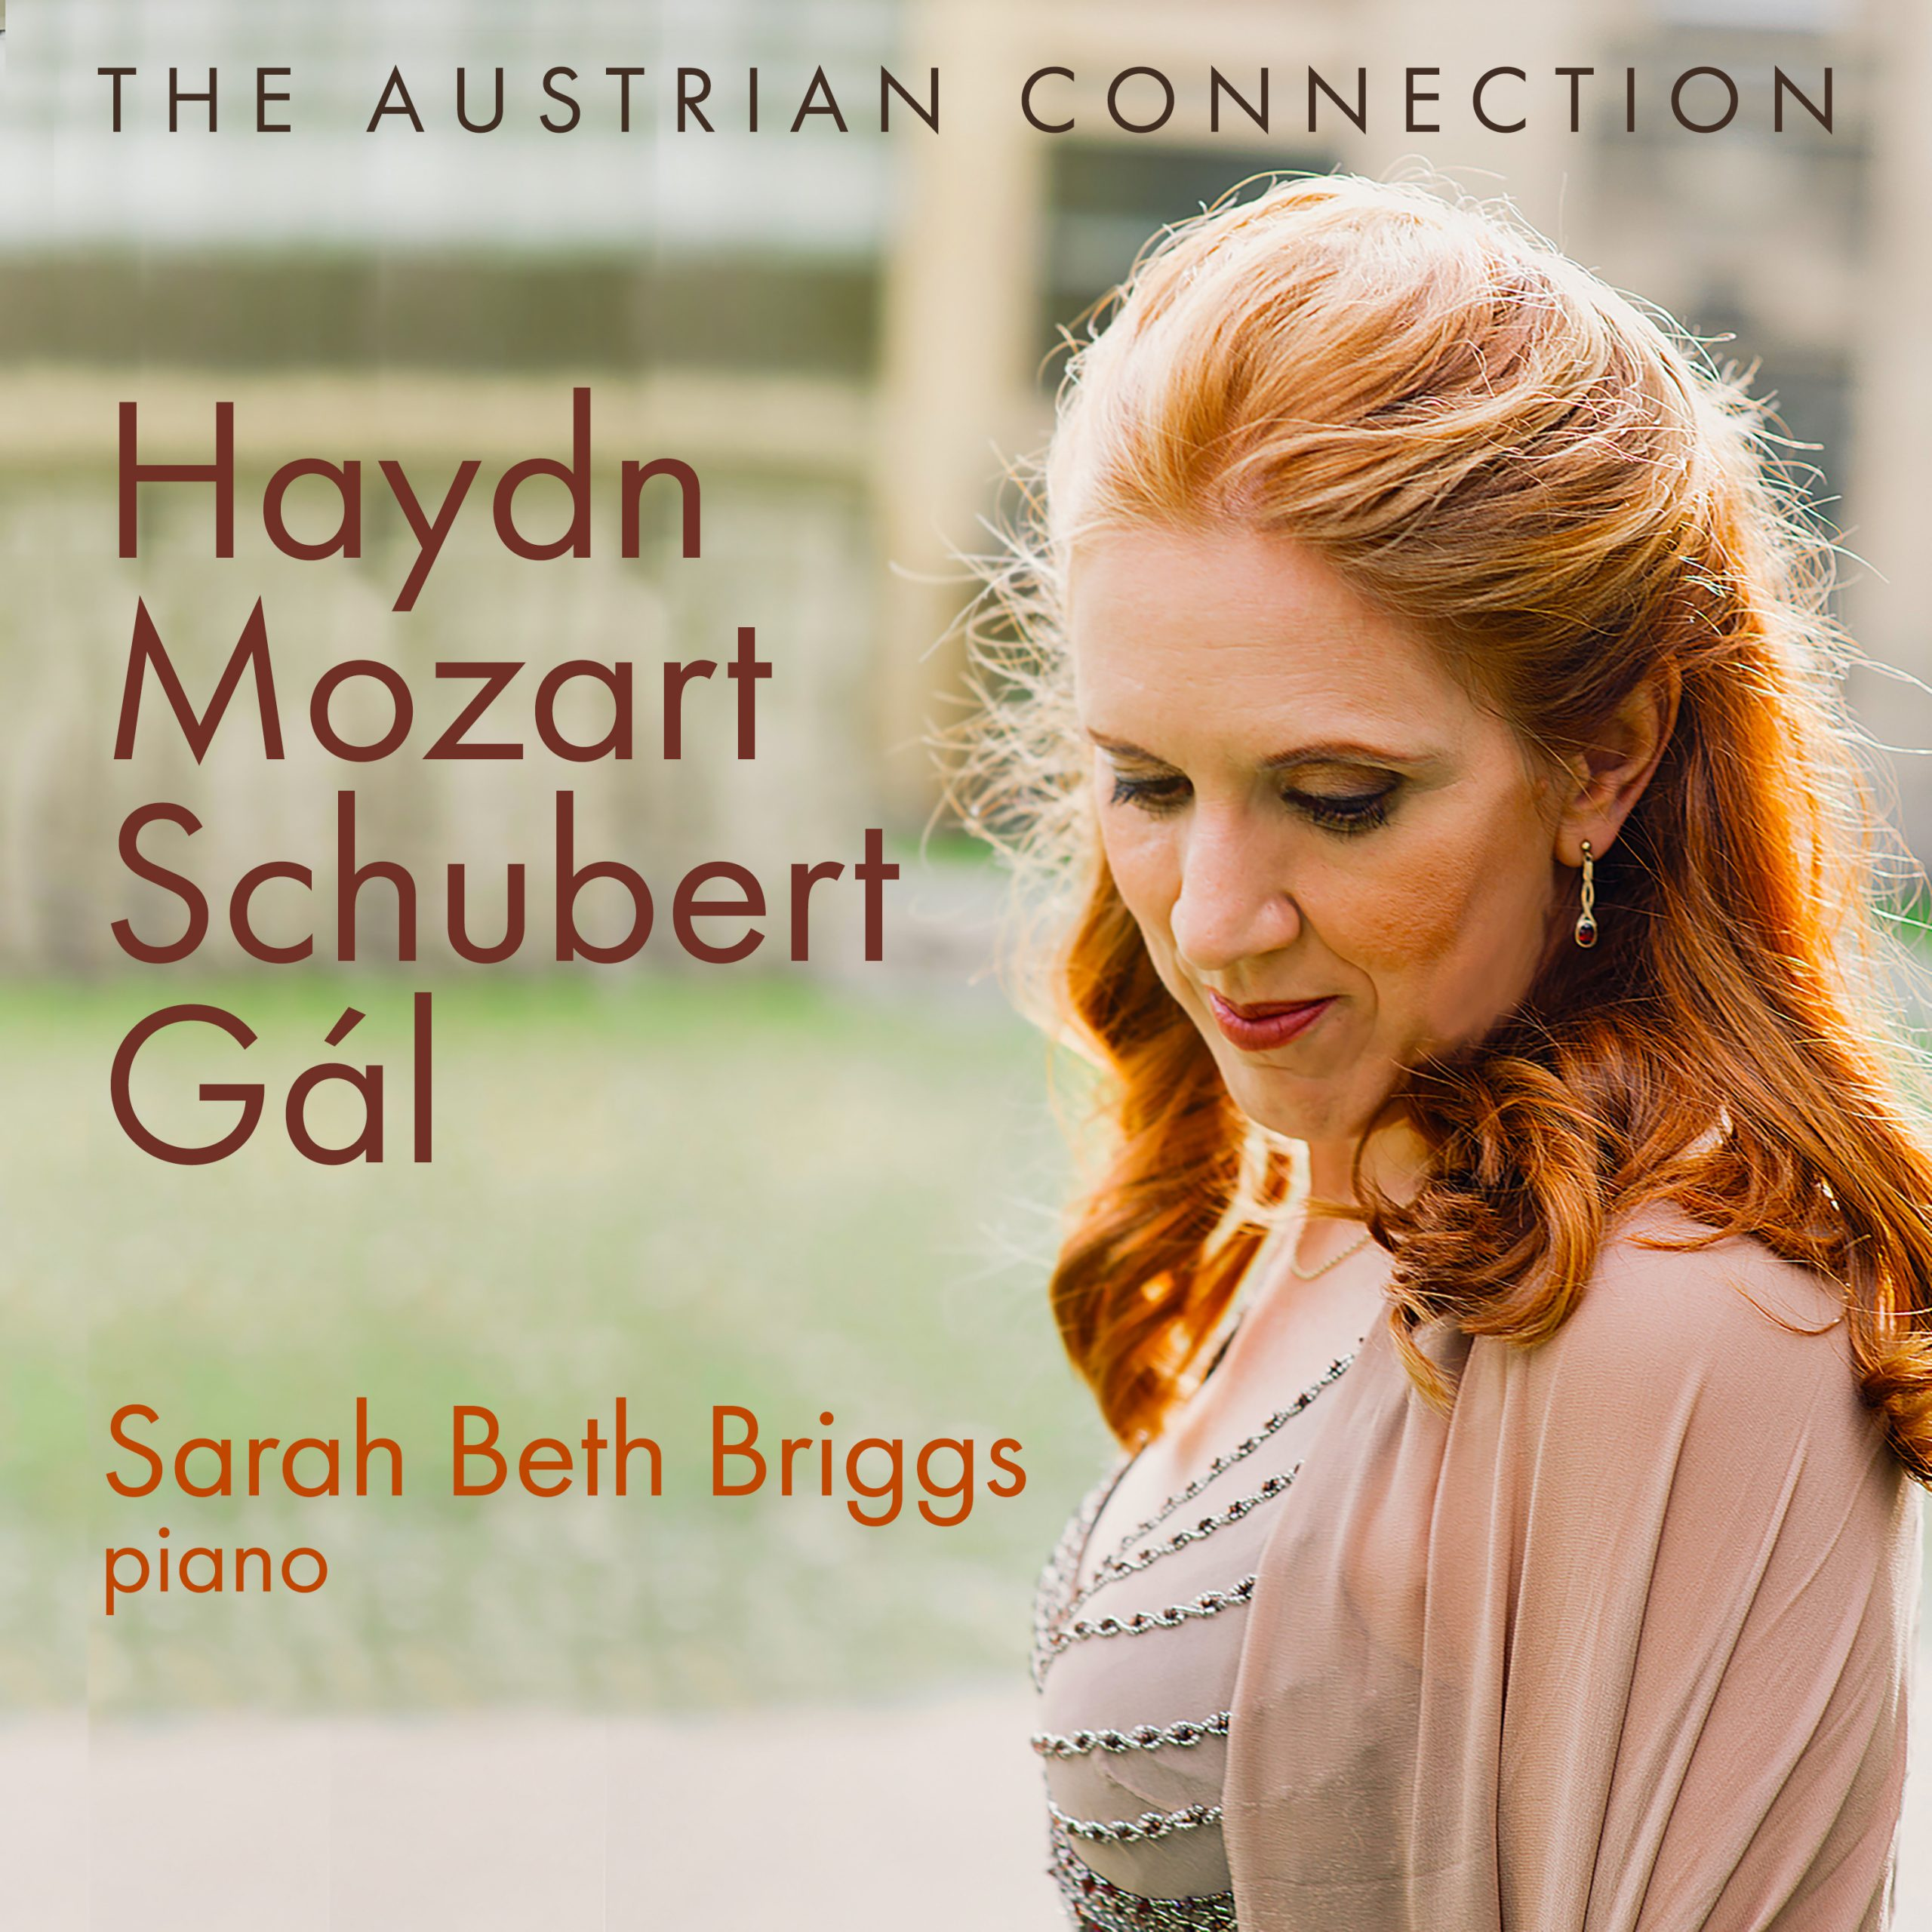 Sarah Beth Briggs The Austrian Connection album cover